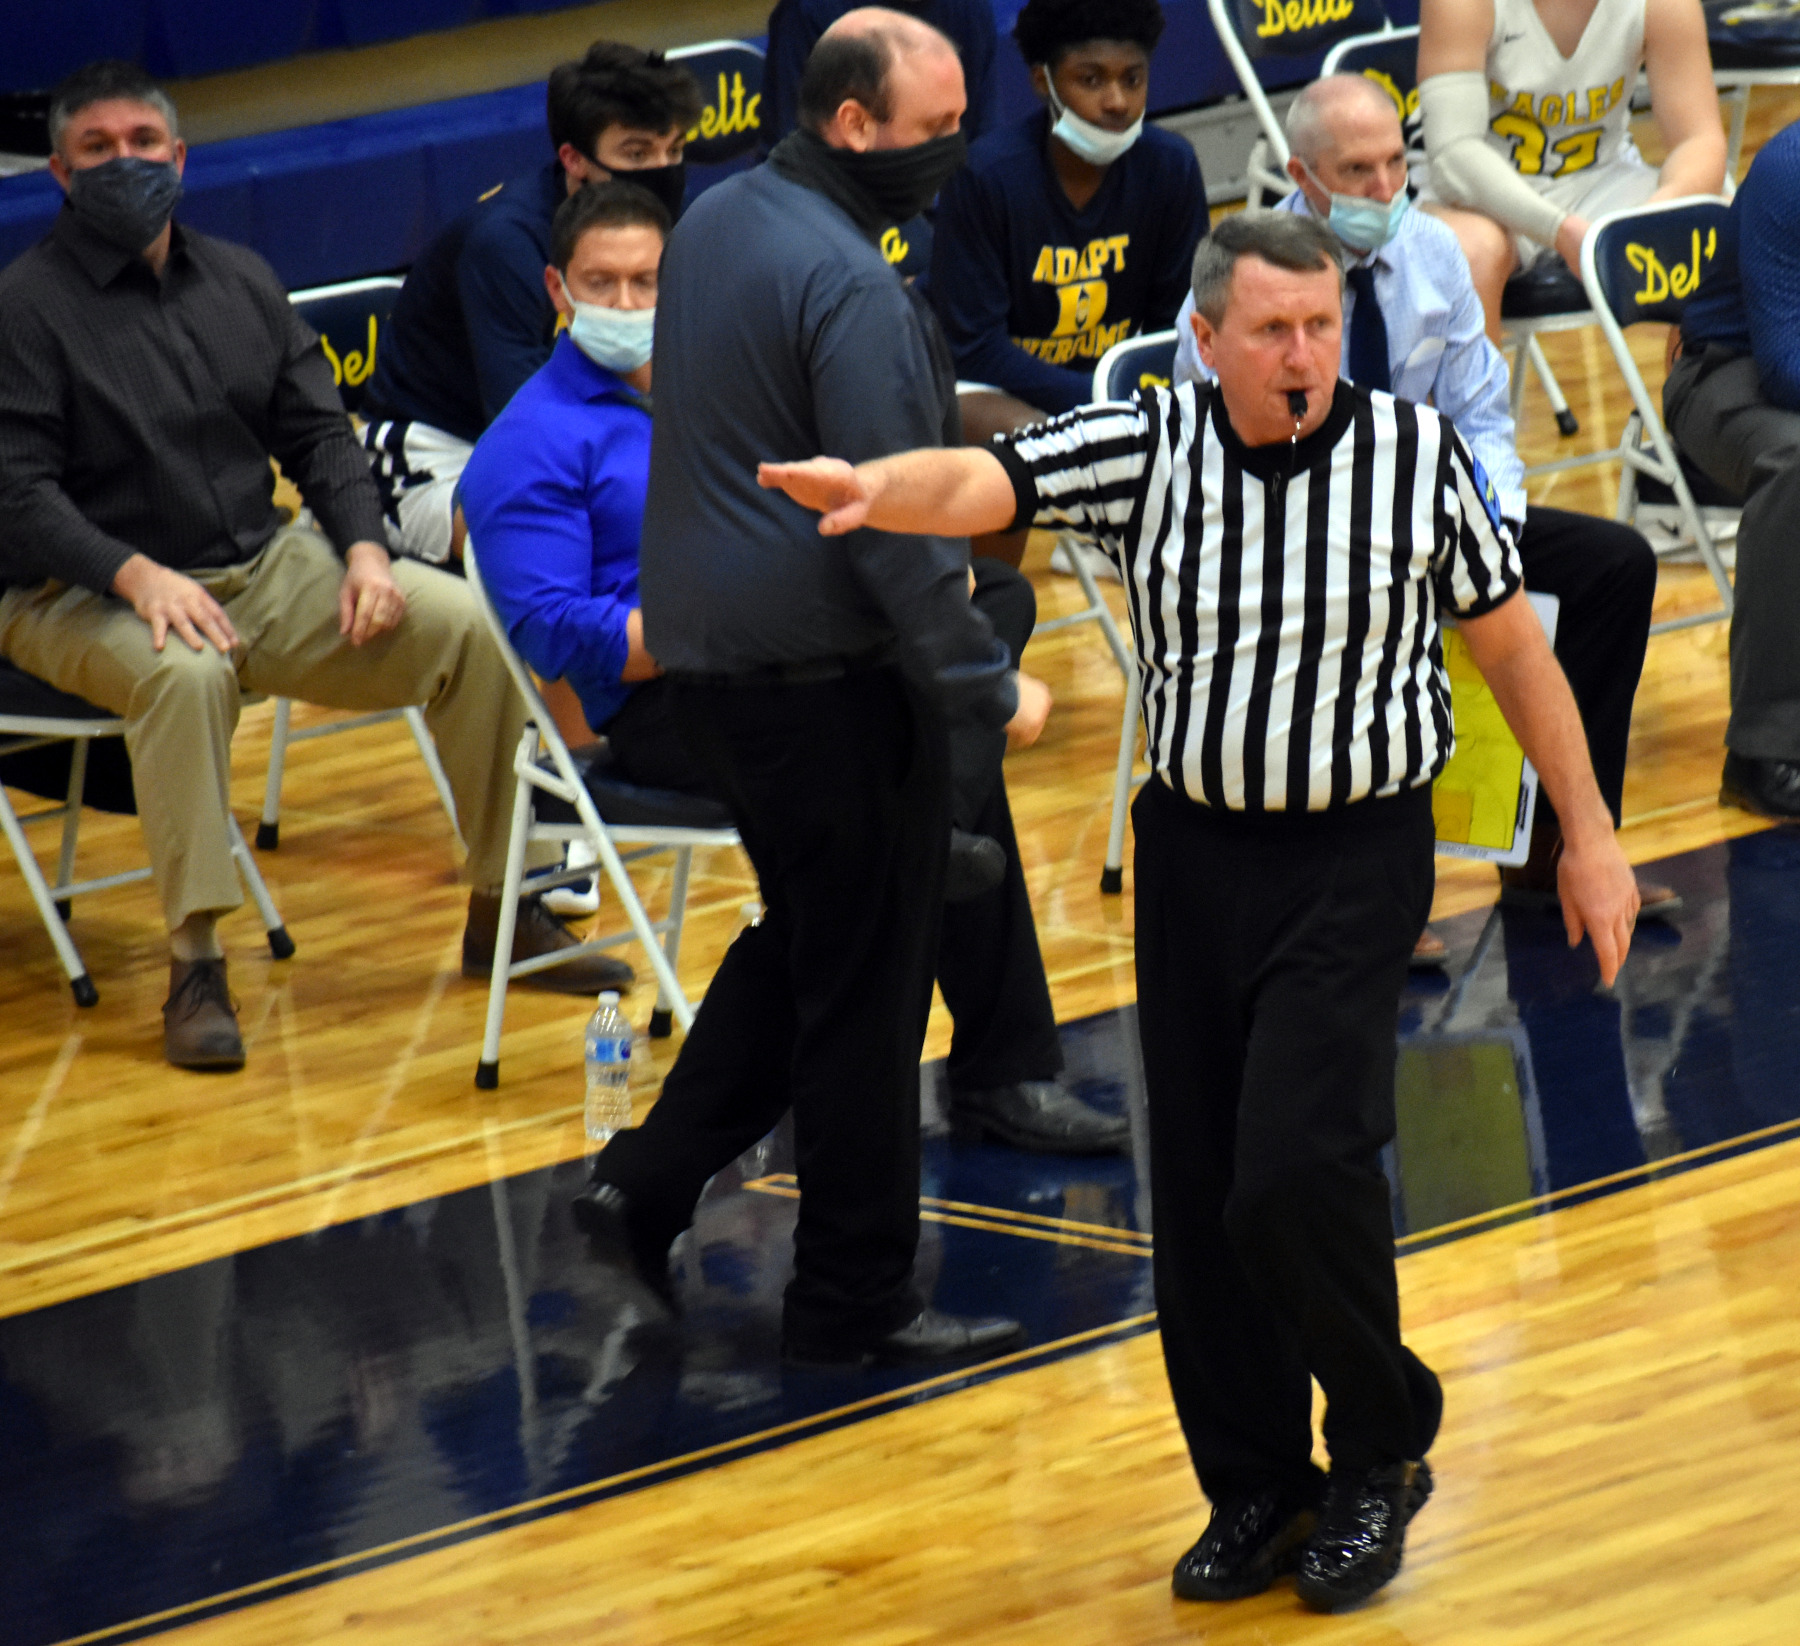 Ref makes call